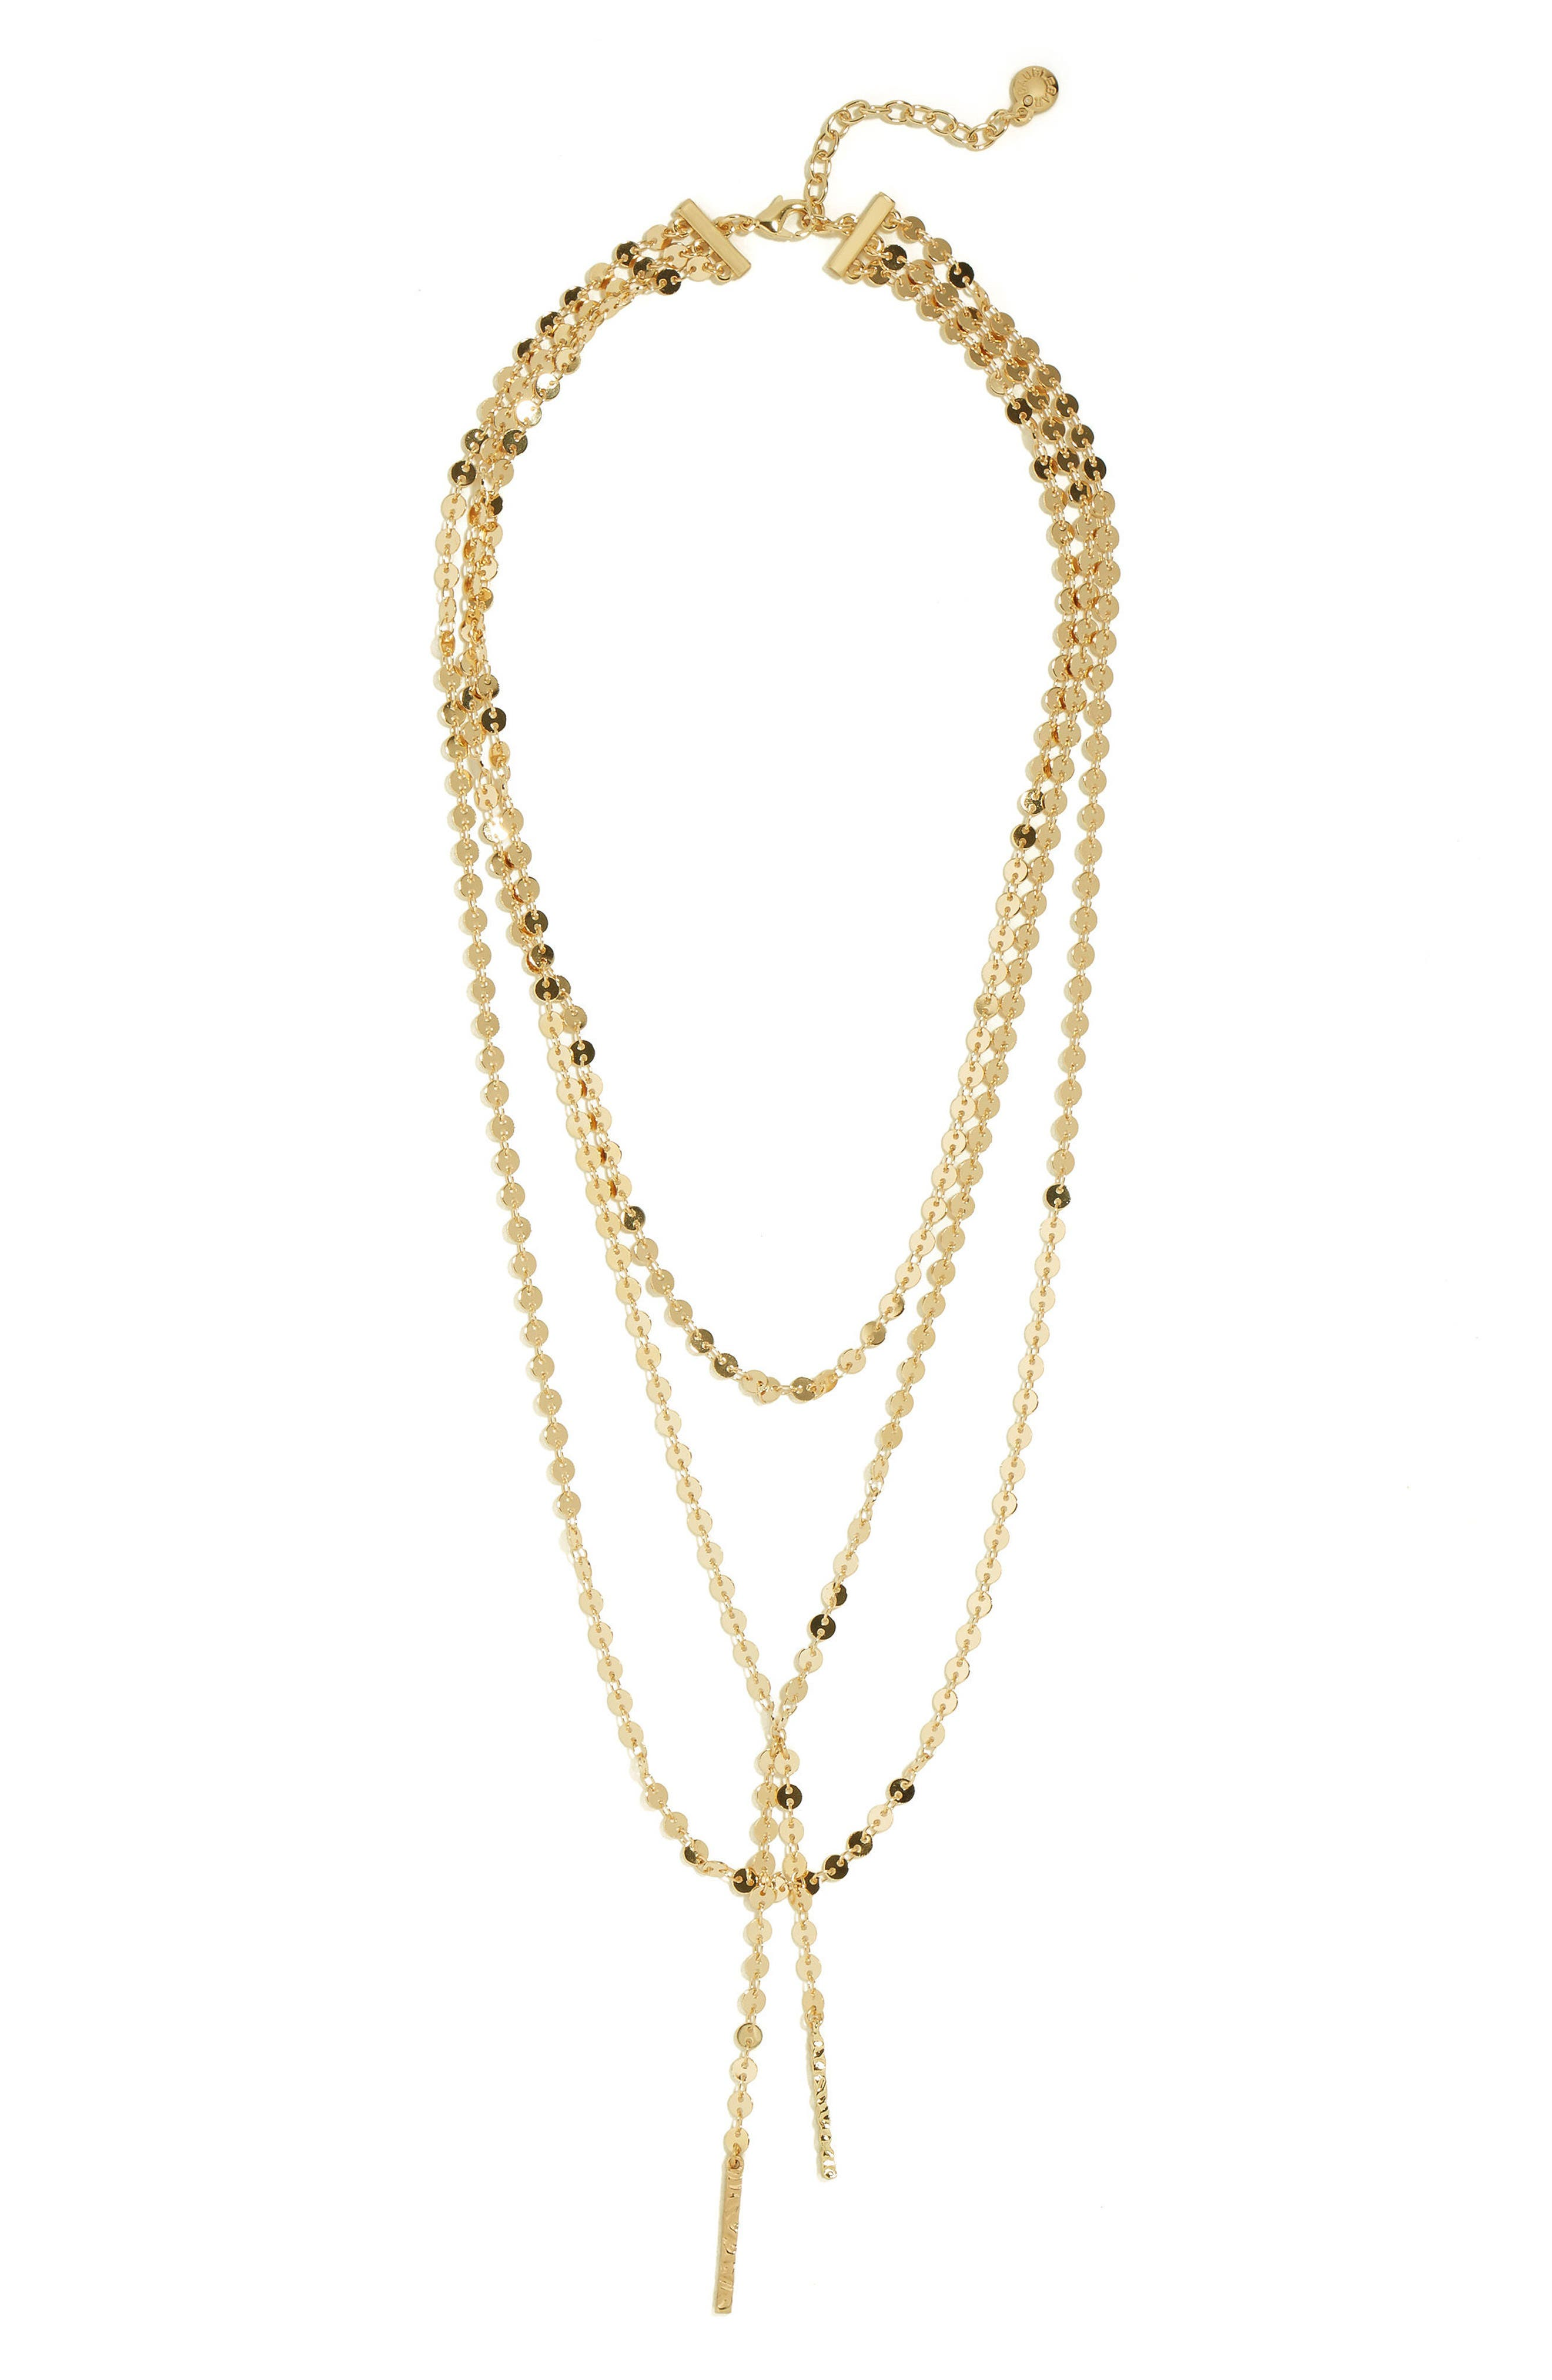 BAUBLEBAR, Amber Layered Chain Y-Necklace, Alternate thumbnail 2, color, GOLD